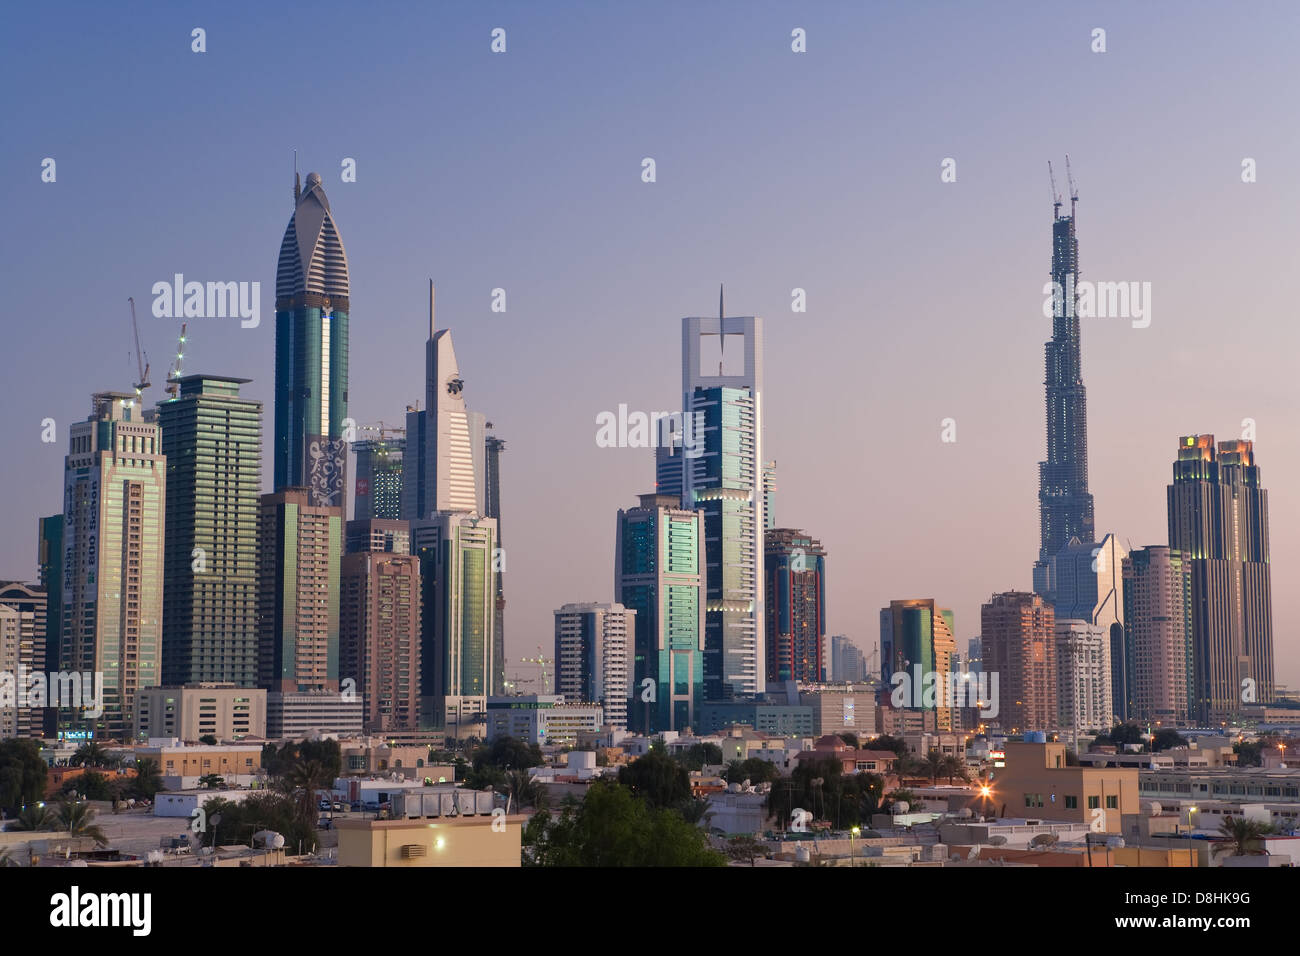 Dubai Elevated View Of The New Dubai Skyline Of Modern Architecture